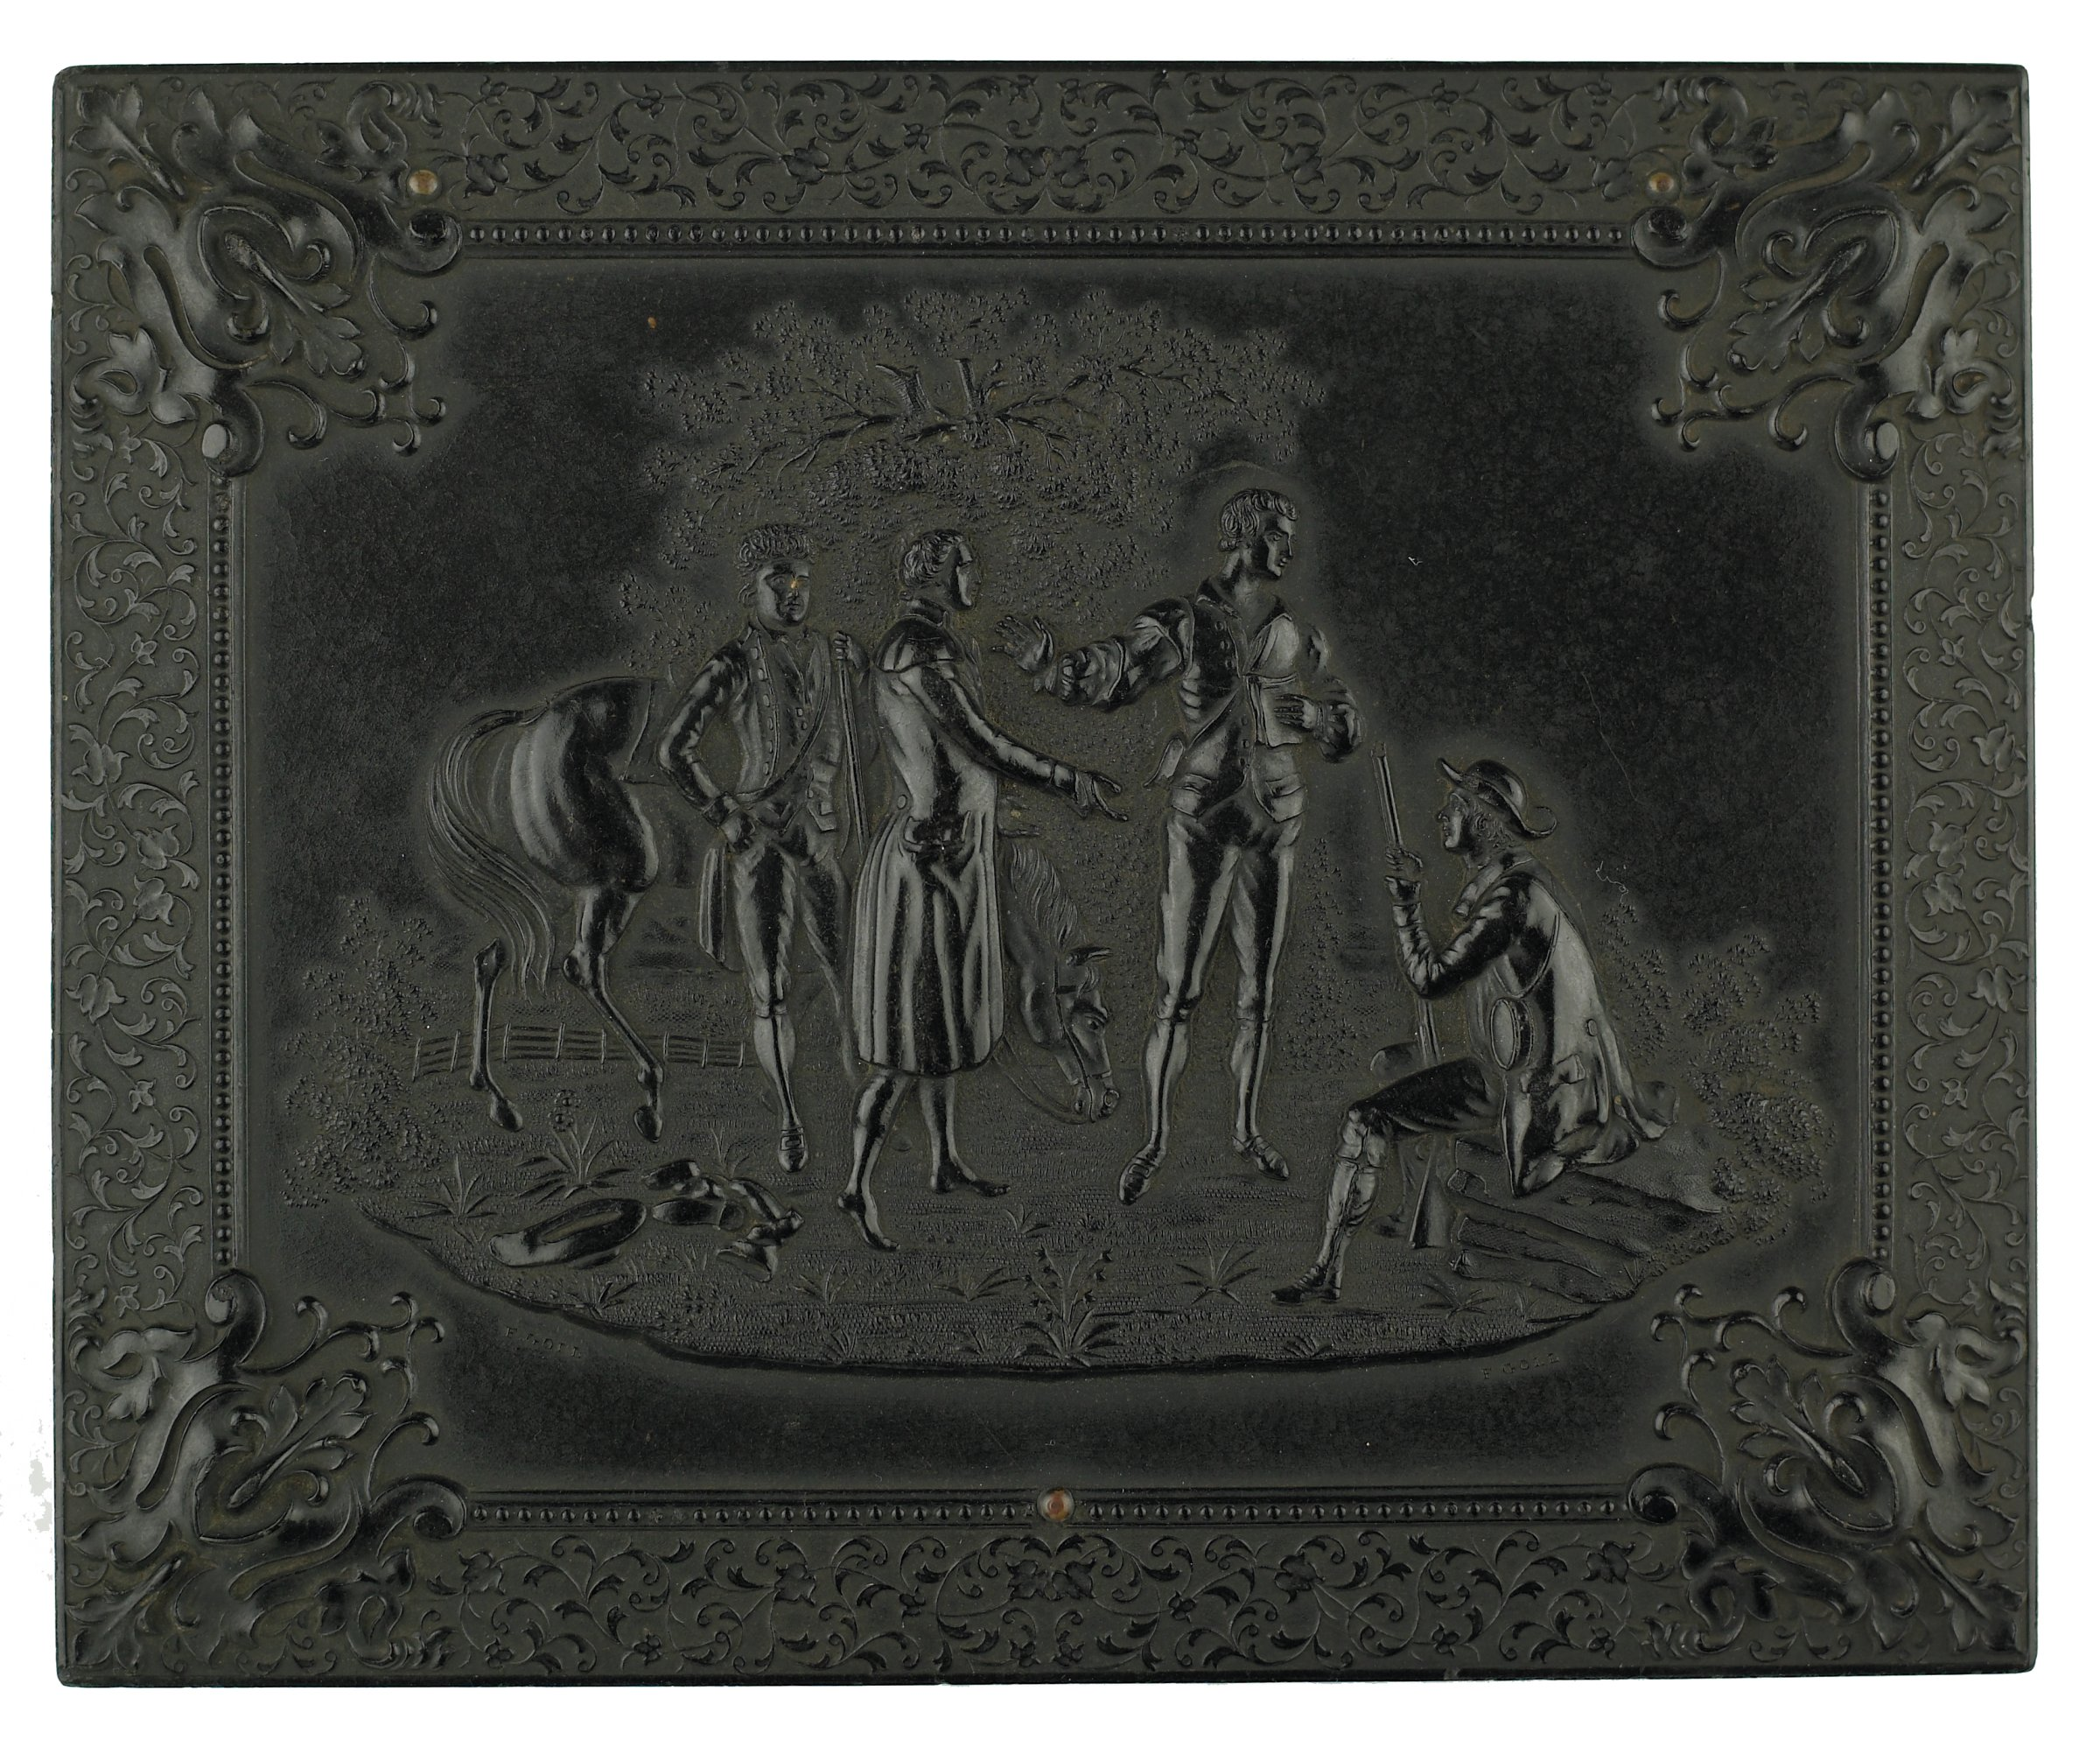 """Pair of portrait ambrotypes (man and woman) in Union case with depiction of """"The Capture of Major André"""" on cover; """"Union"""" case material is a thermoplastic made of wood fiber and shellac."""